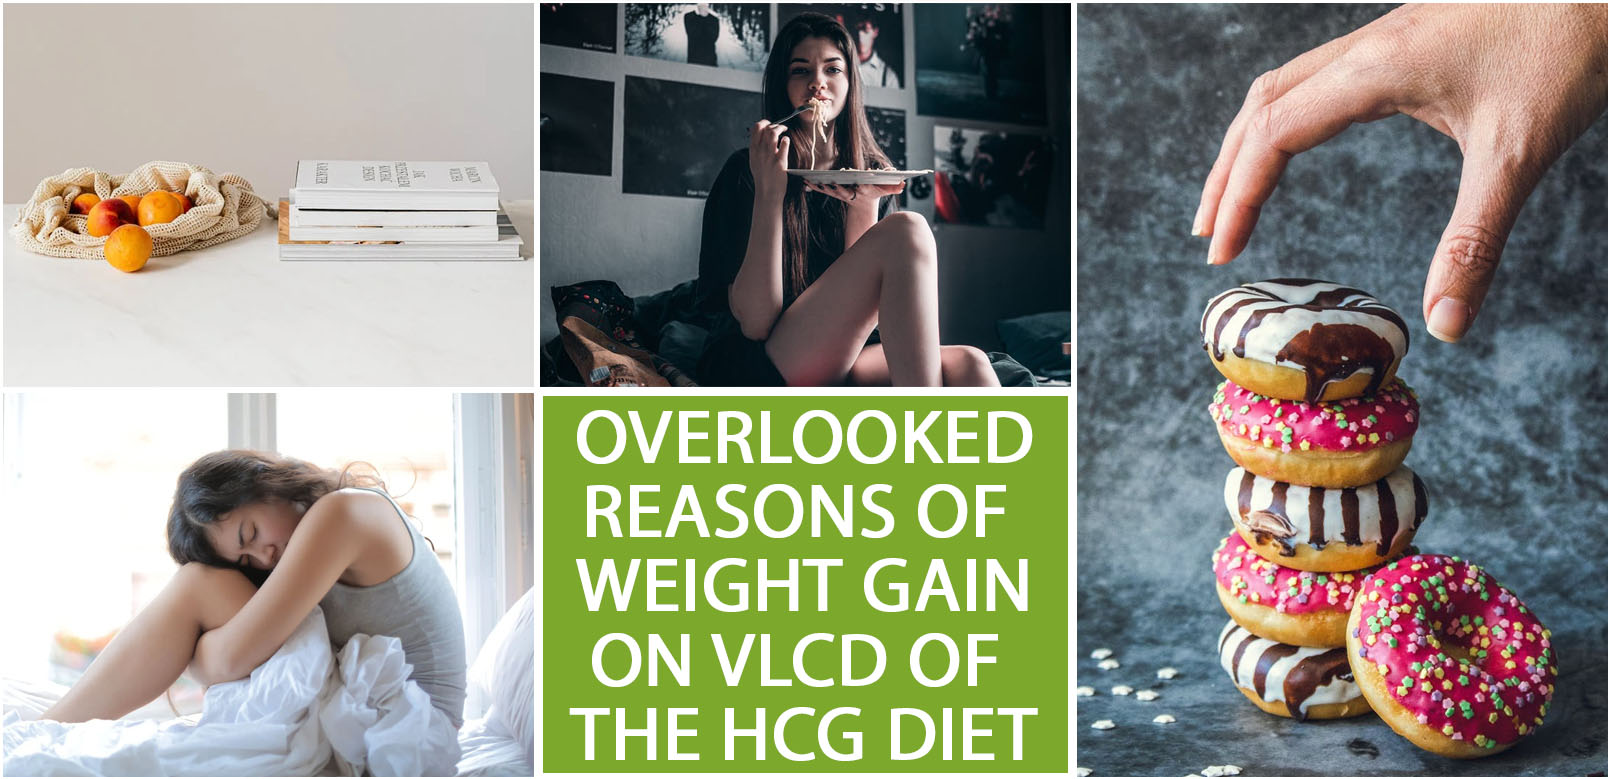 OVERLOOKED REASONS OF WEIGHT GAIN ON VLCD OF THE HCG DIET